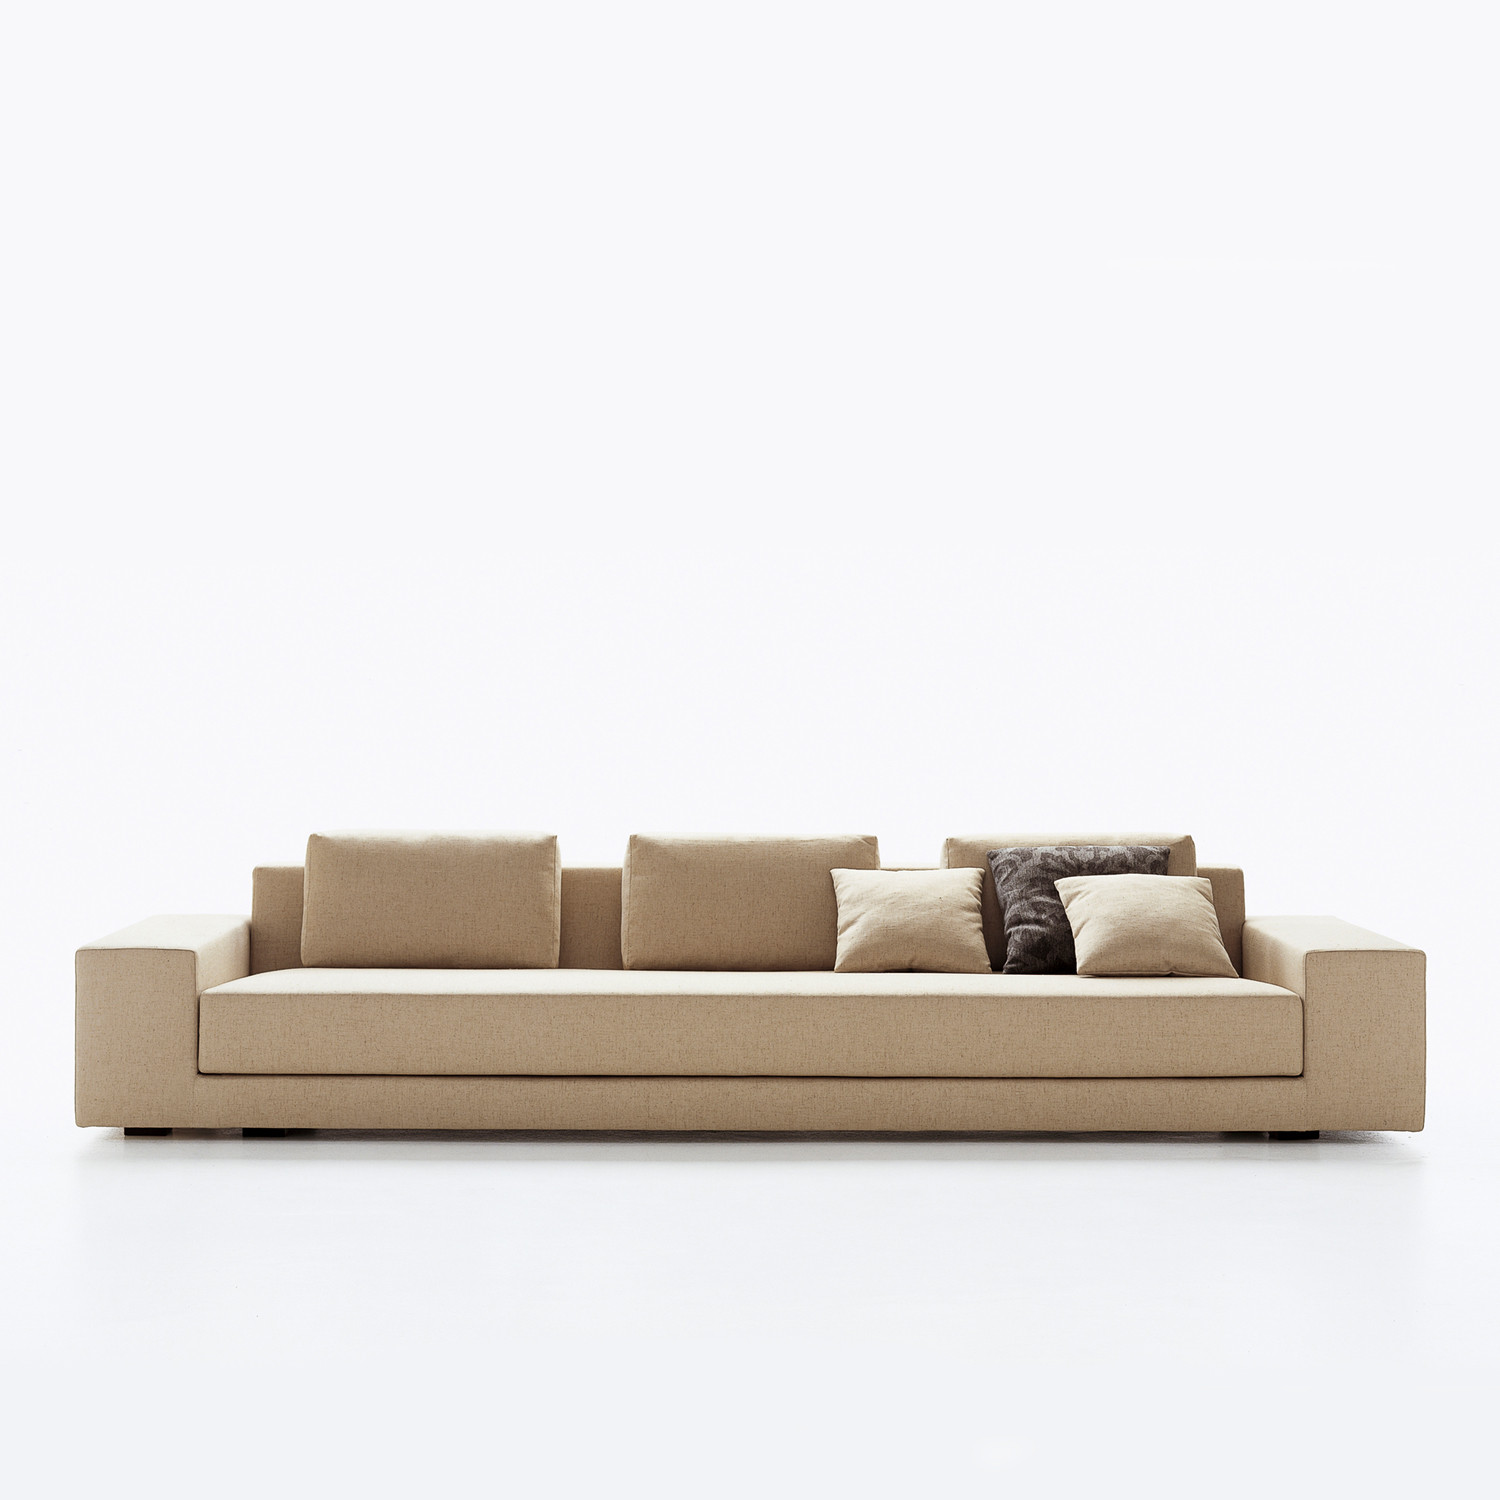 Idea-One Sofa